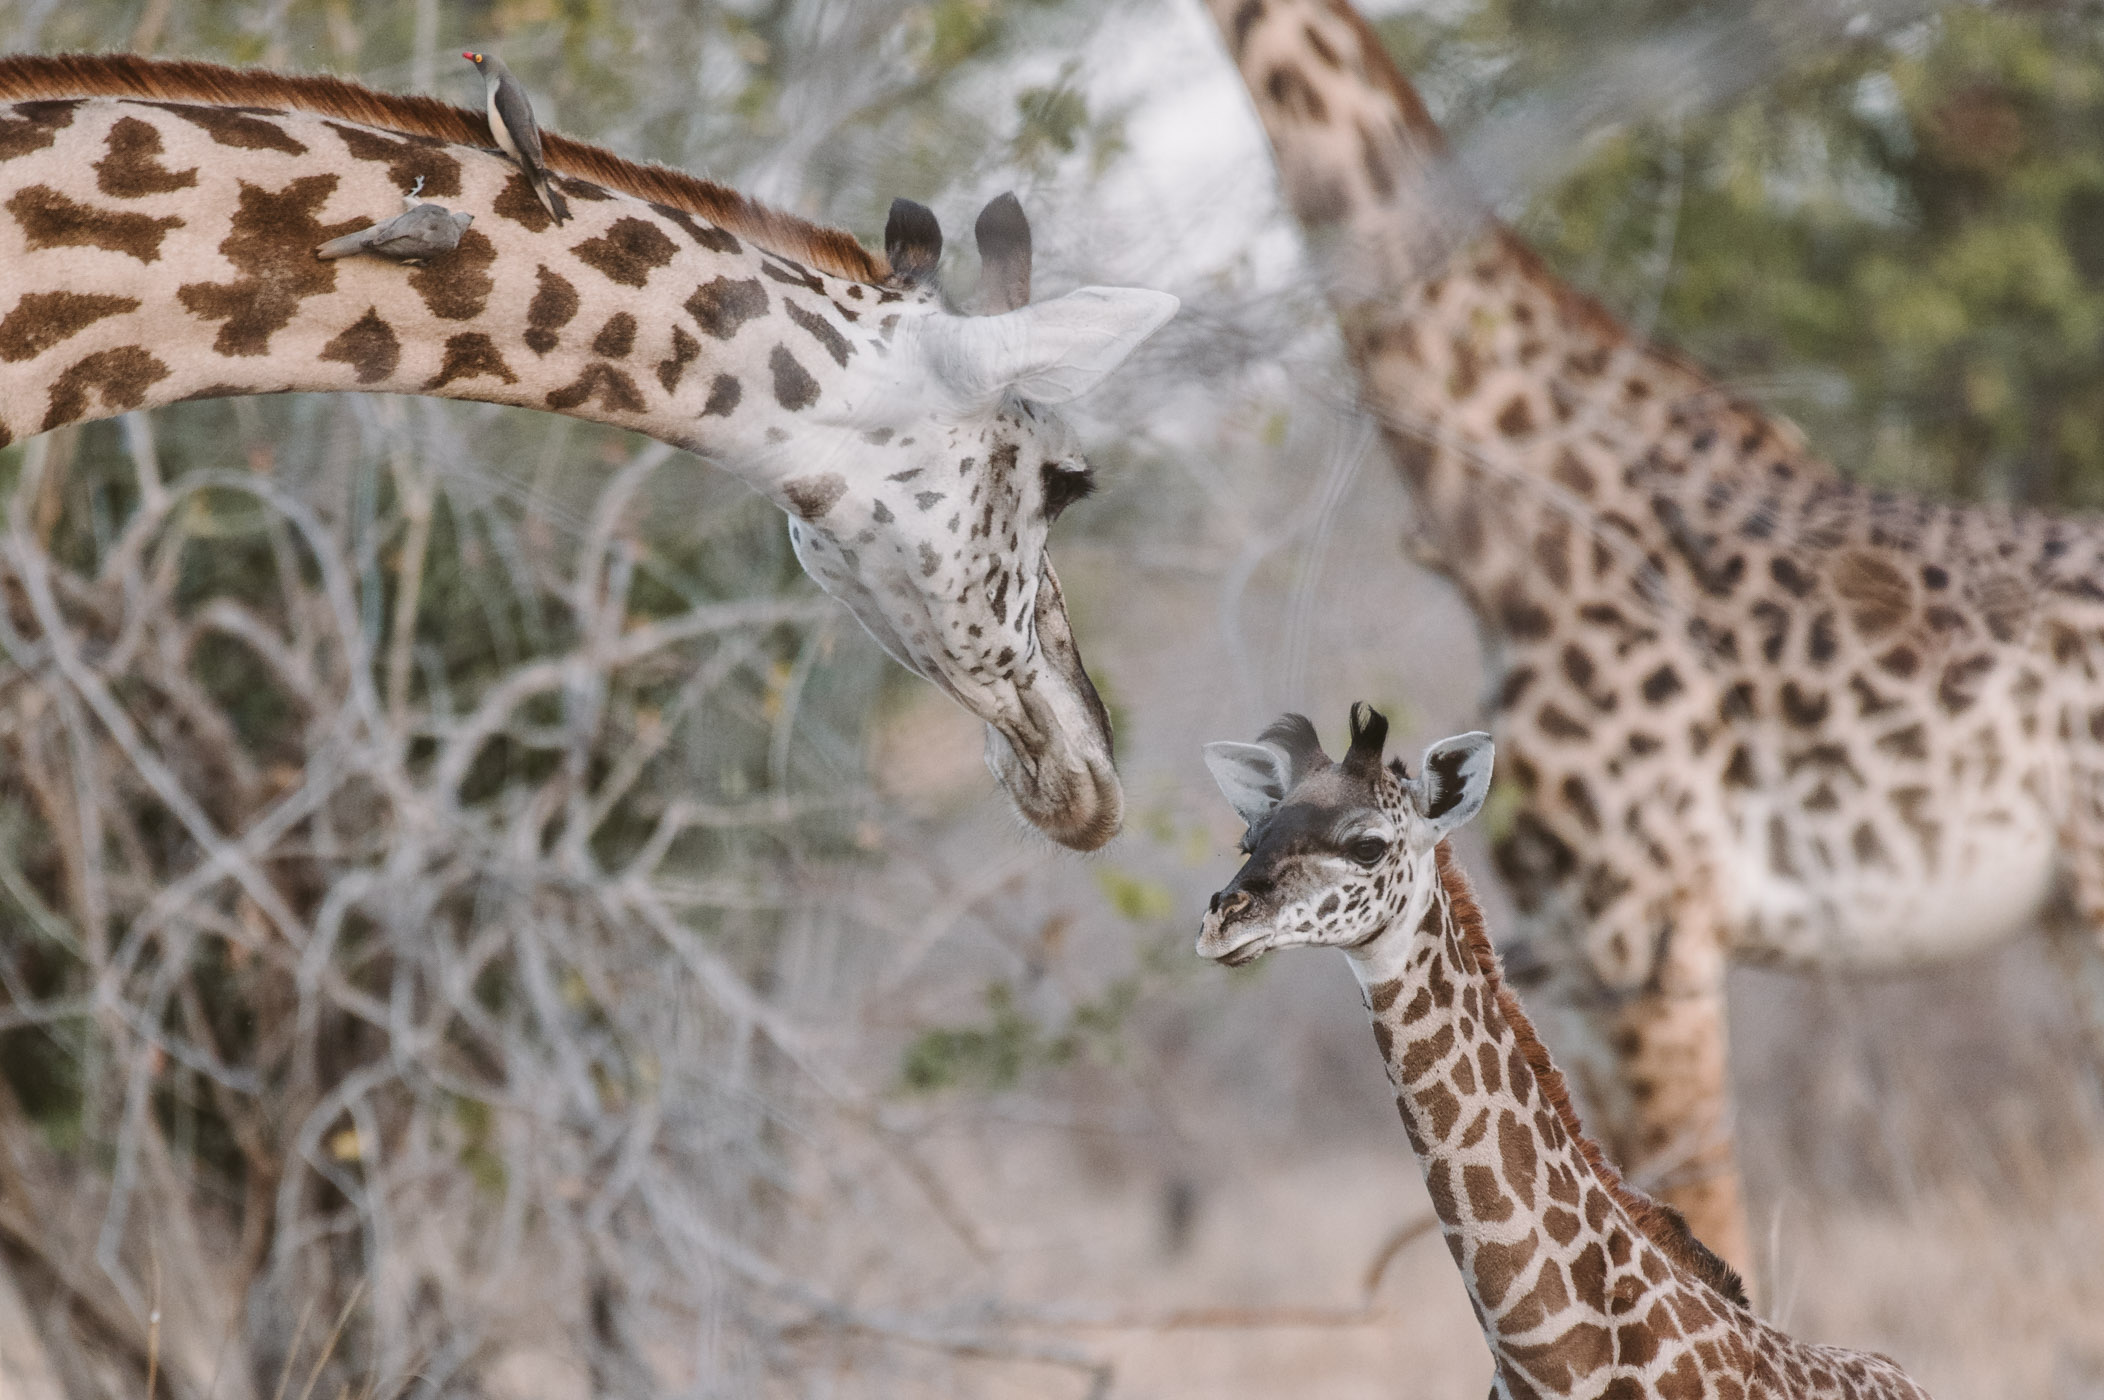 Giraffe with baby in South Luangwa National Park Zambia